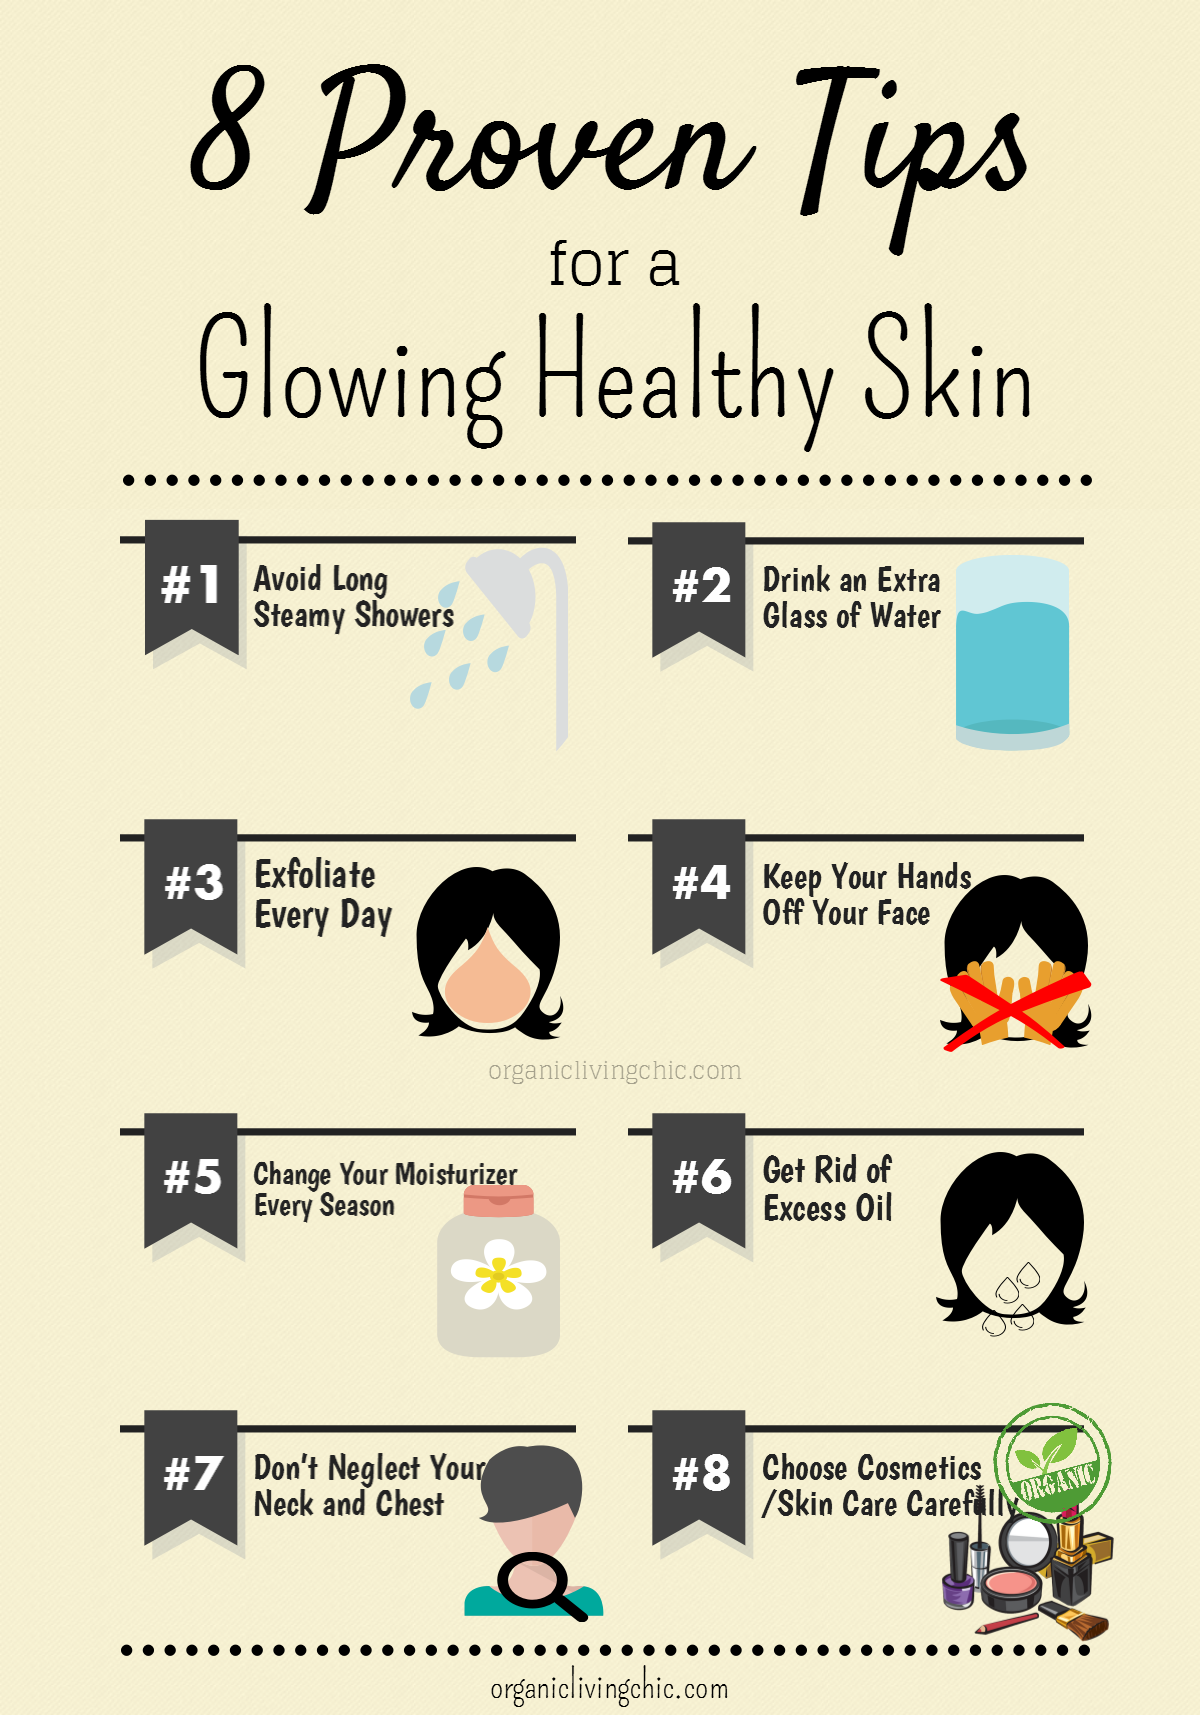 10 Proven Tips for a Glowing Healthy Skin  Visual.ly